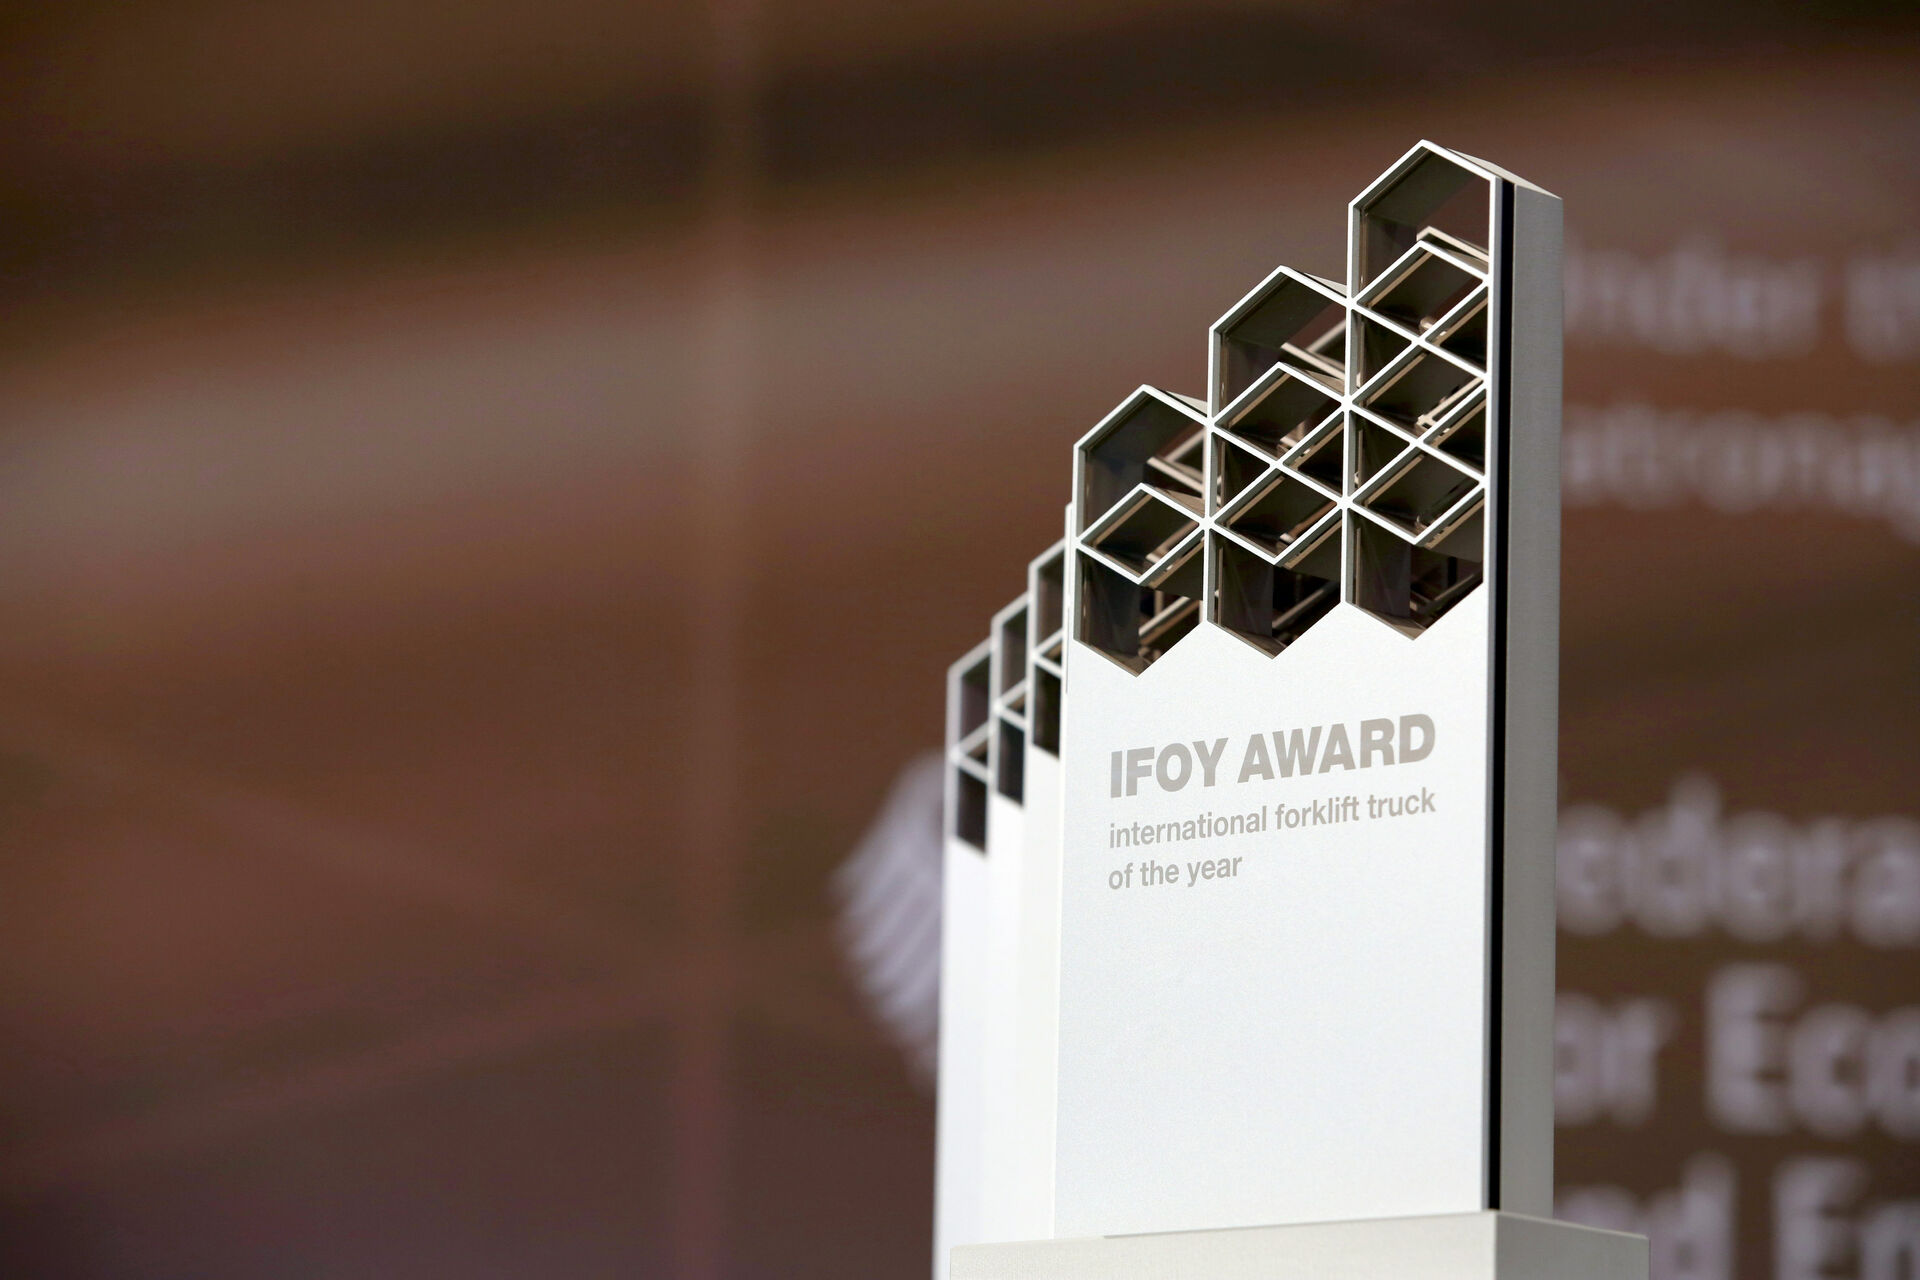 IFOY - INTERNATIONAL FORKLIFT TRUCK OF THE YEAR